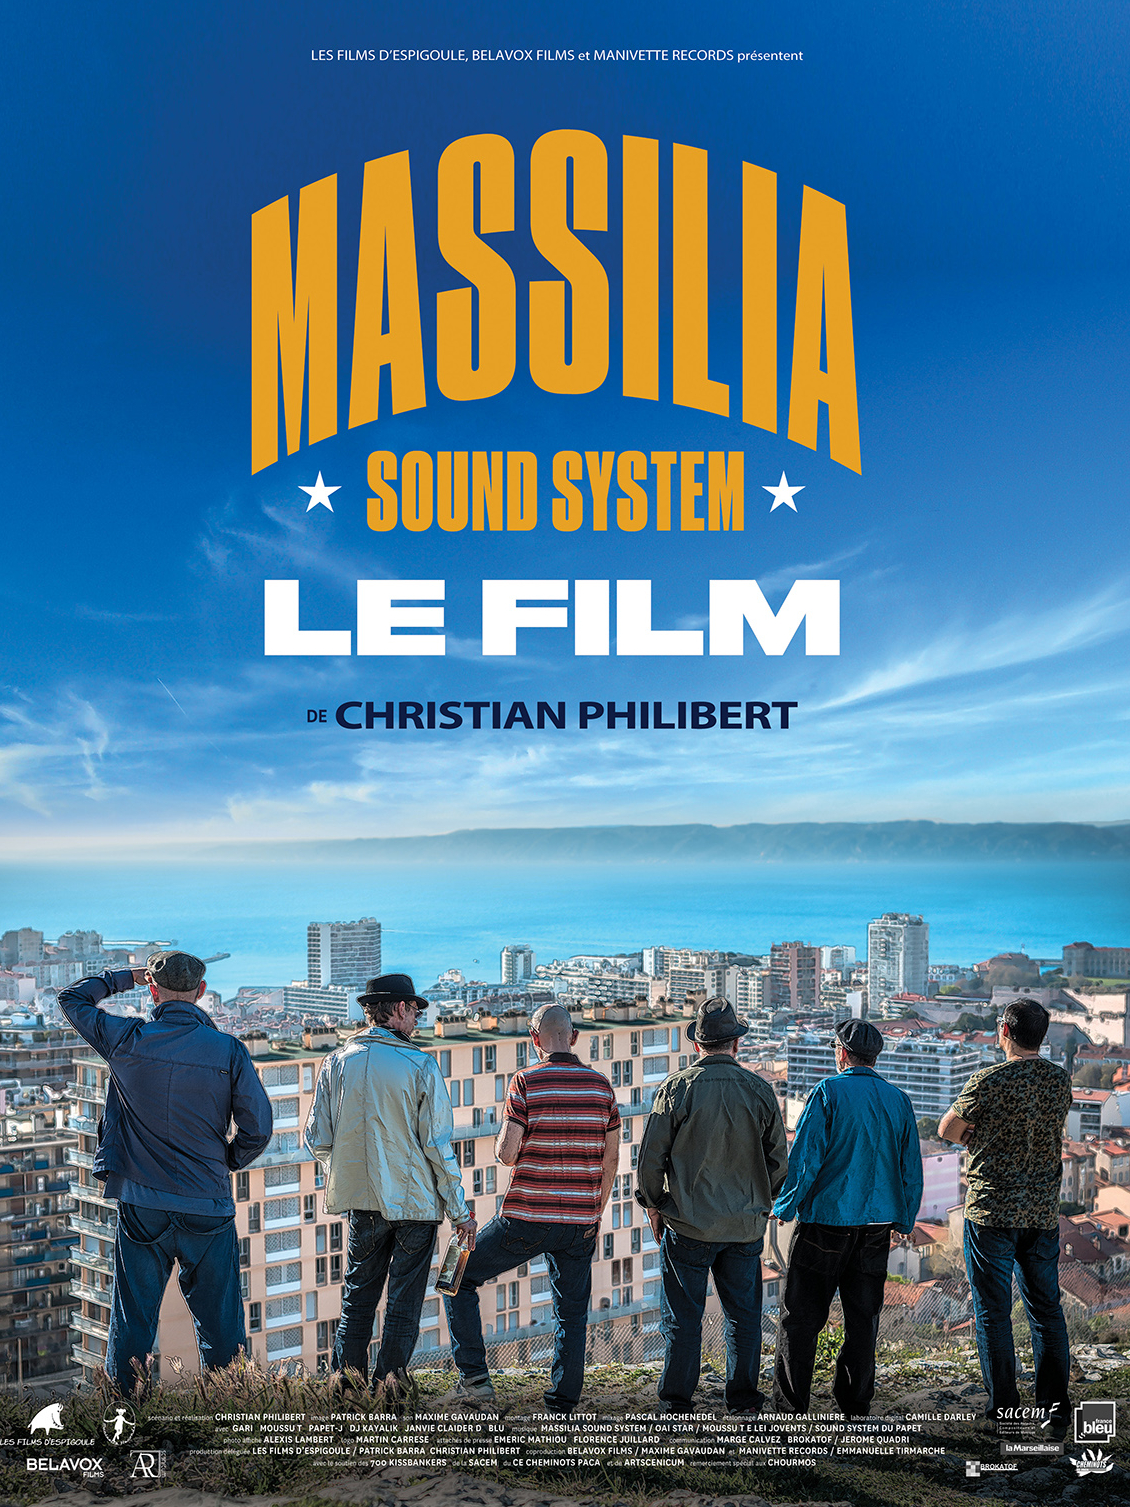 Massilia Sound System - Le film |